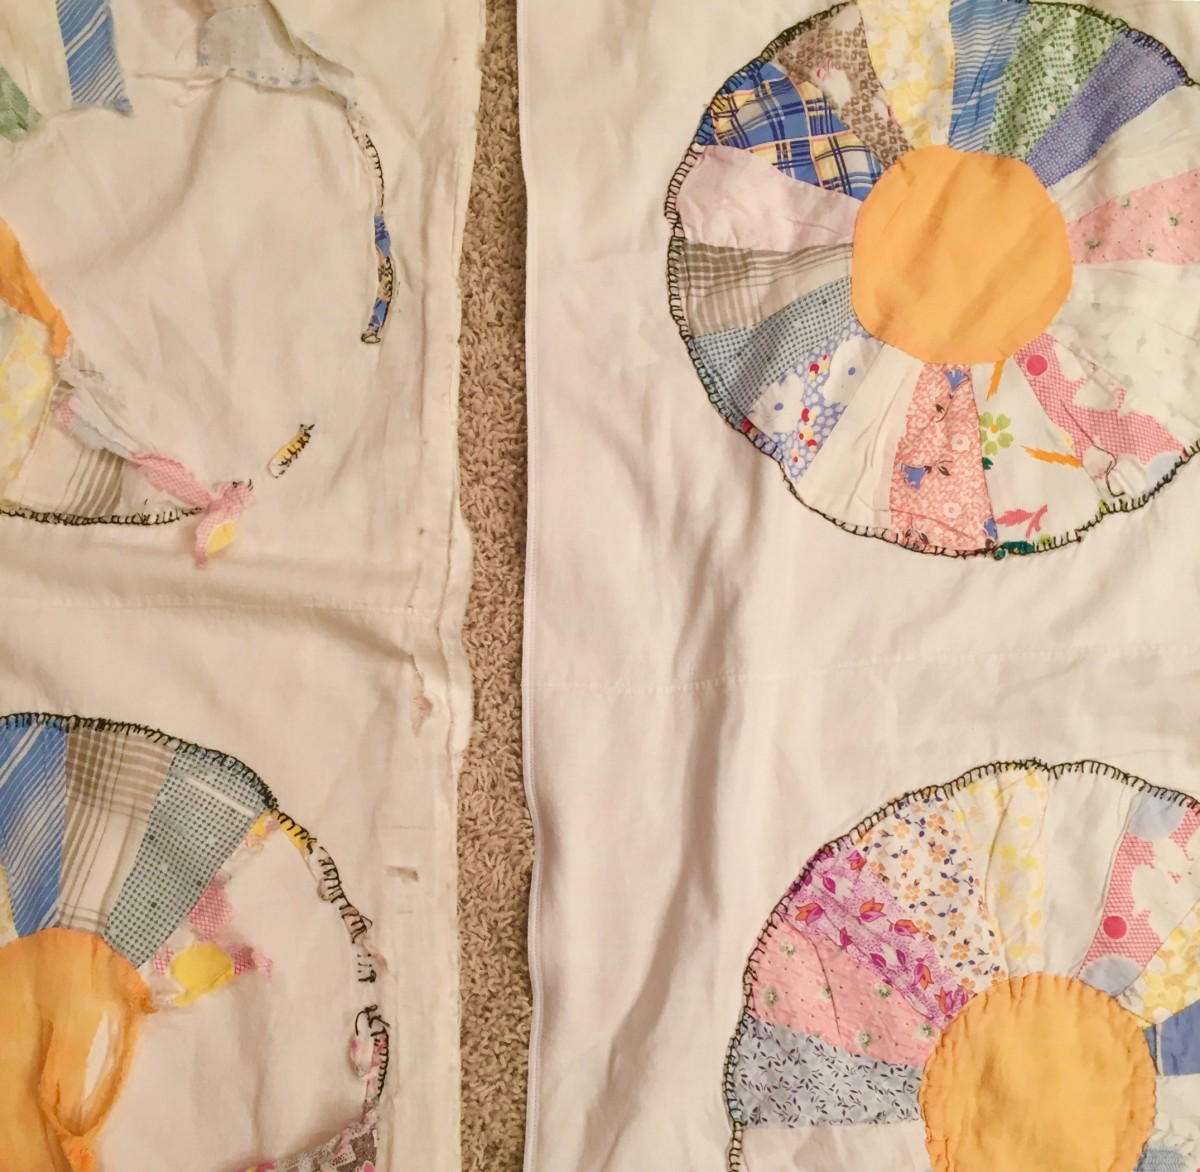 The old, worn quilt section is shown next to the newly serged section.